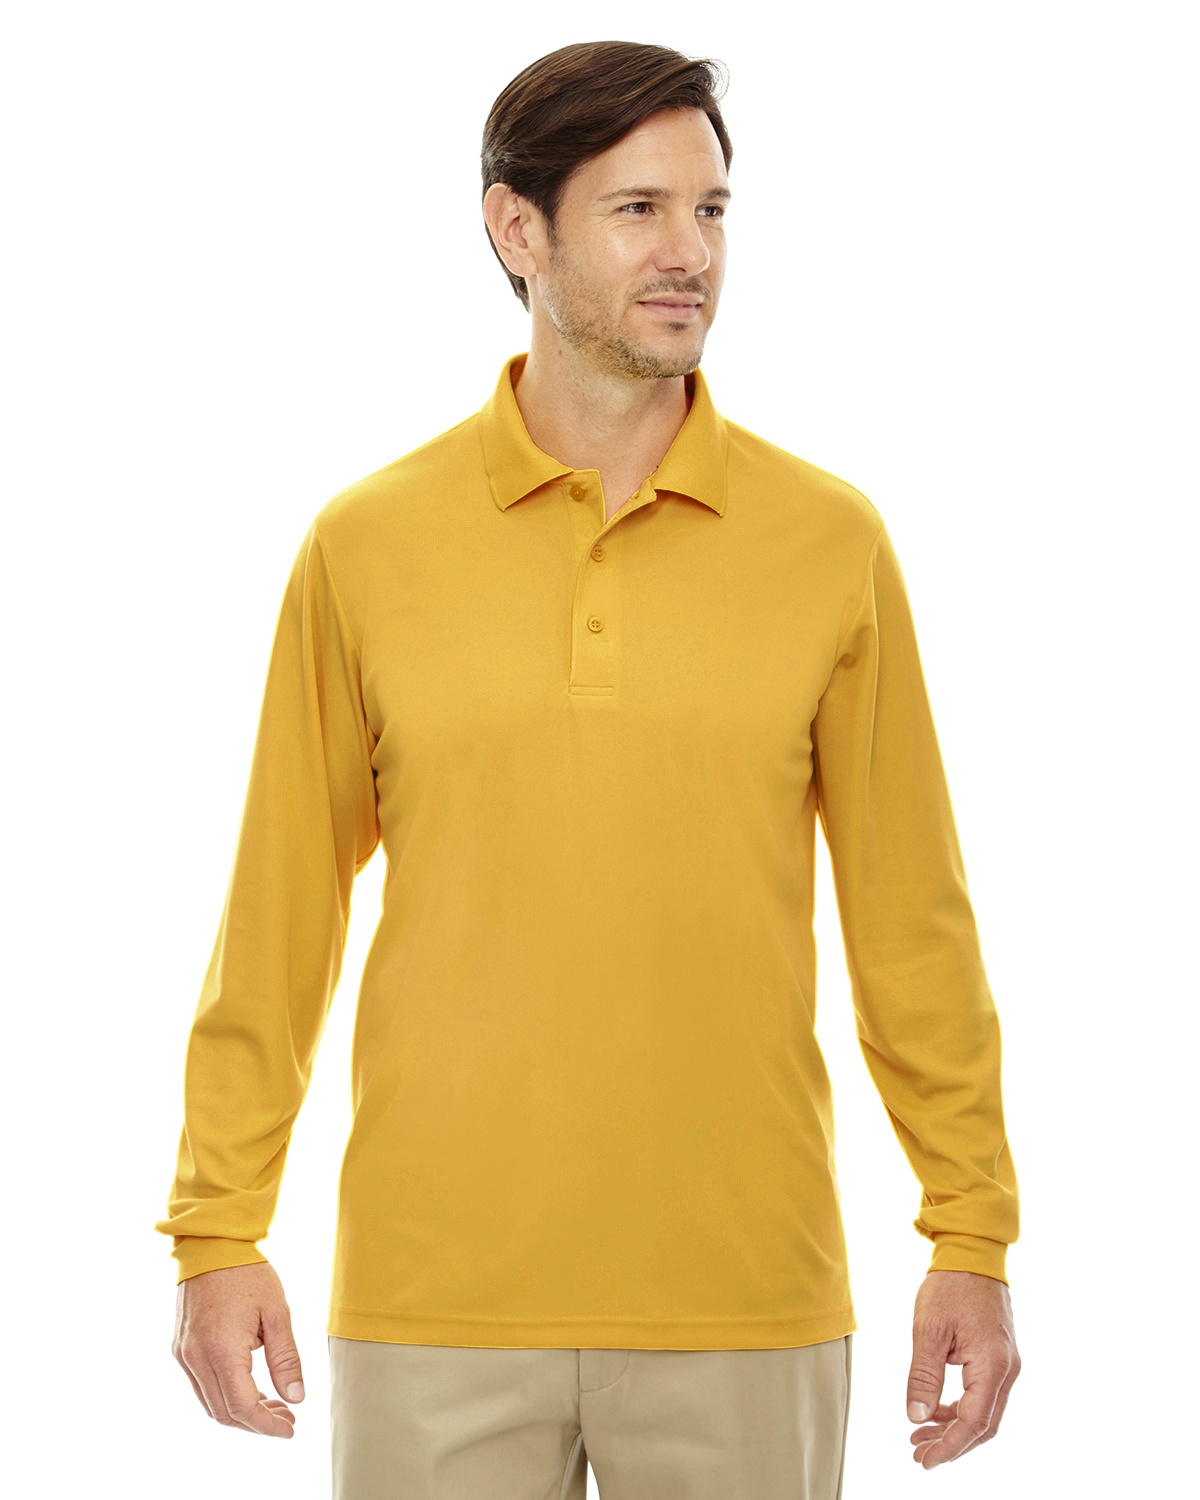 M Ash City Carbon Extreme Mens Snag Protection Long-Sleeve Polo